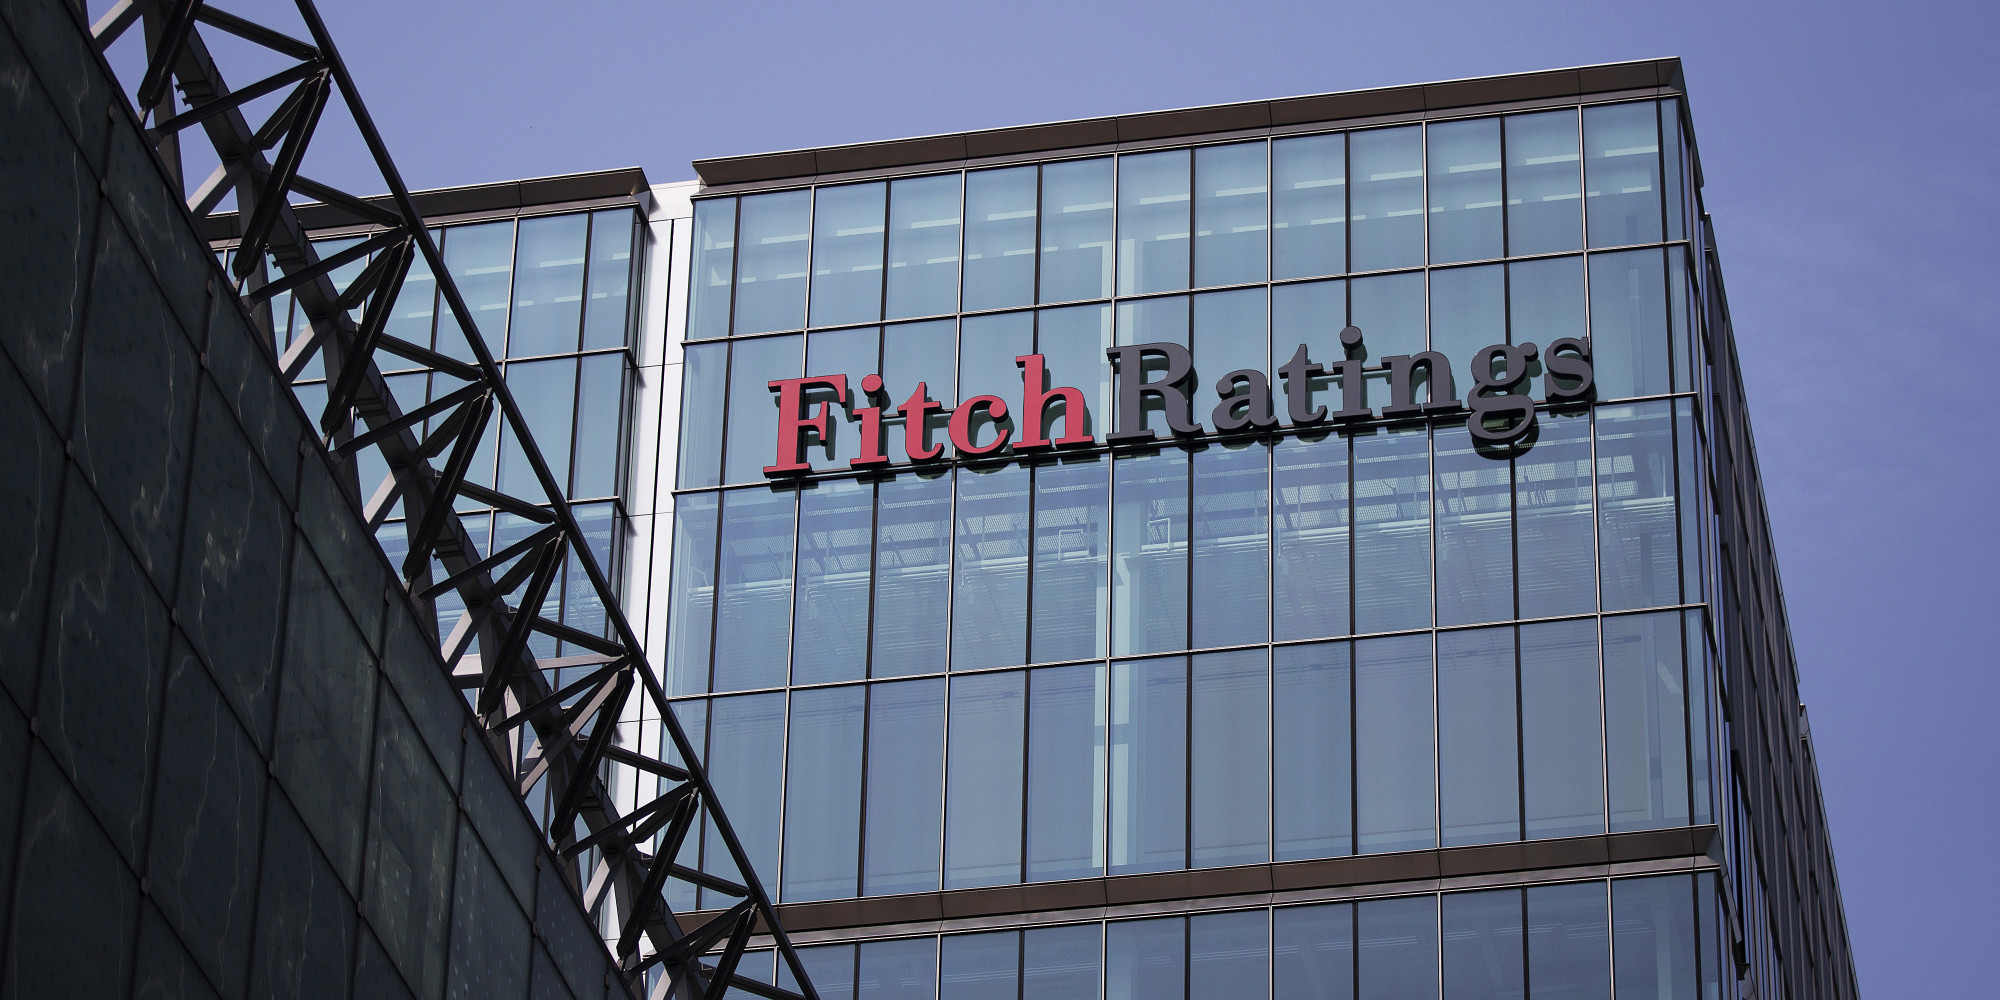 Fitch upgrades Greece to 'B-' from 'CCC' with positive outlook